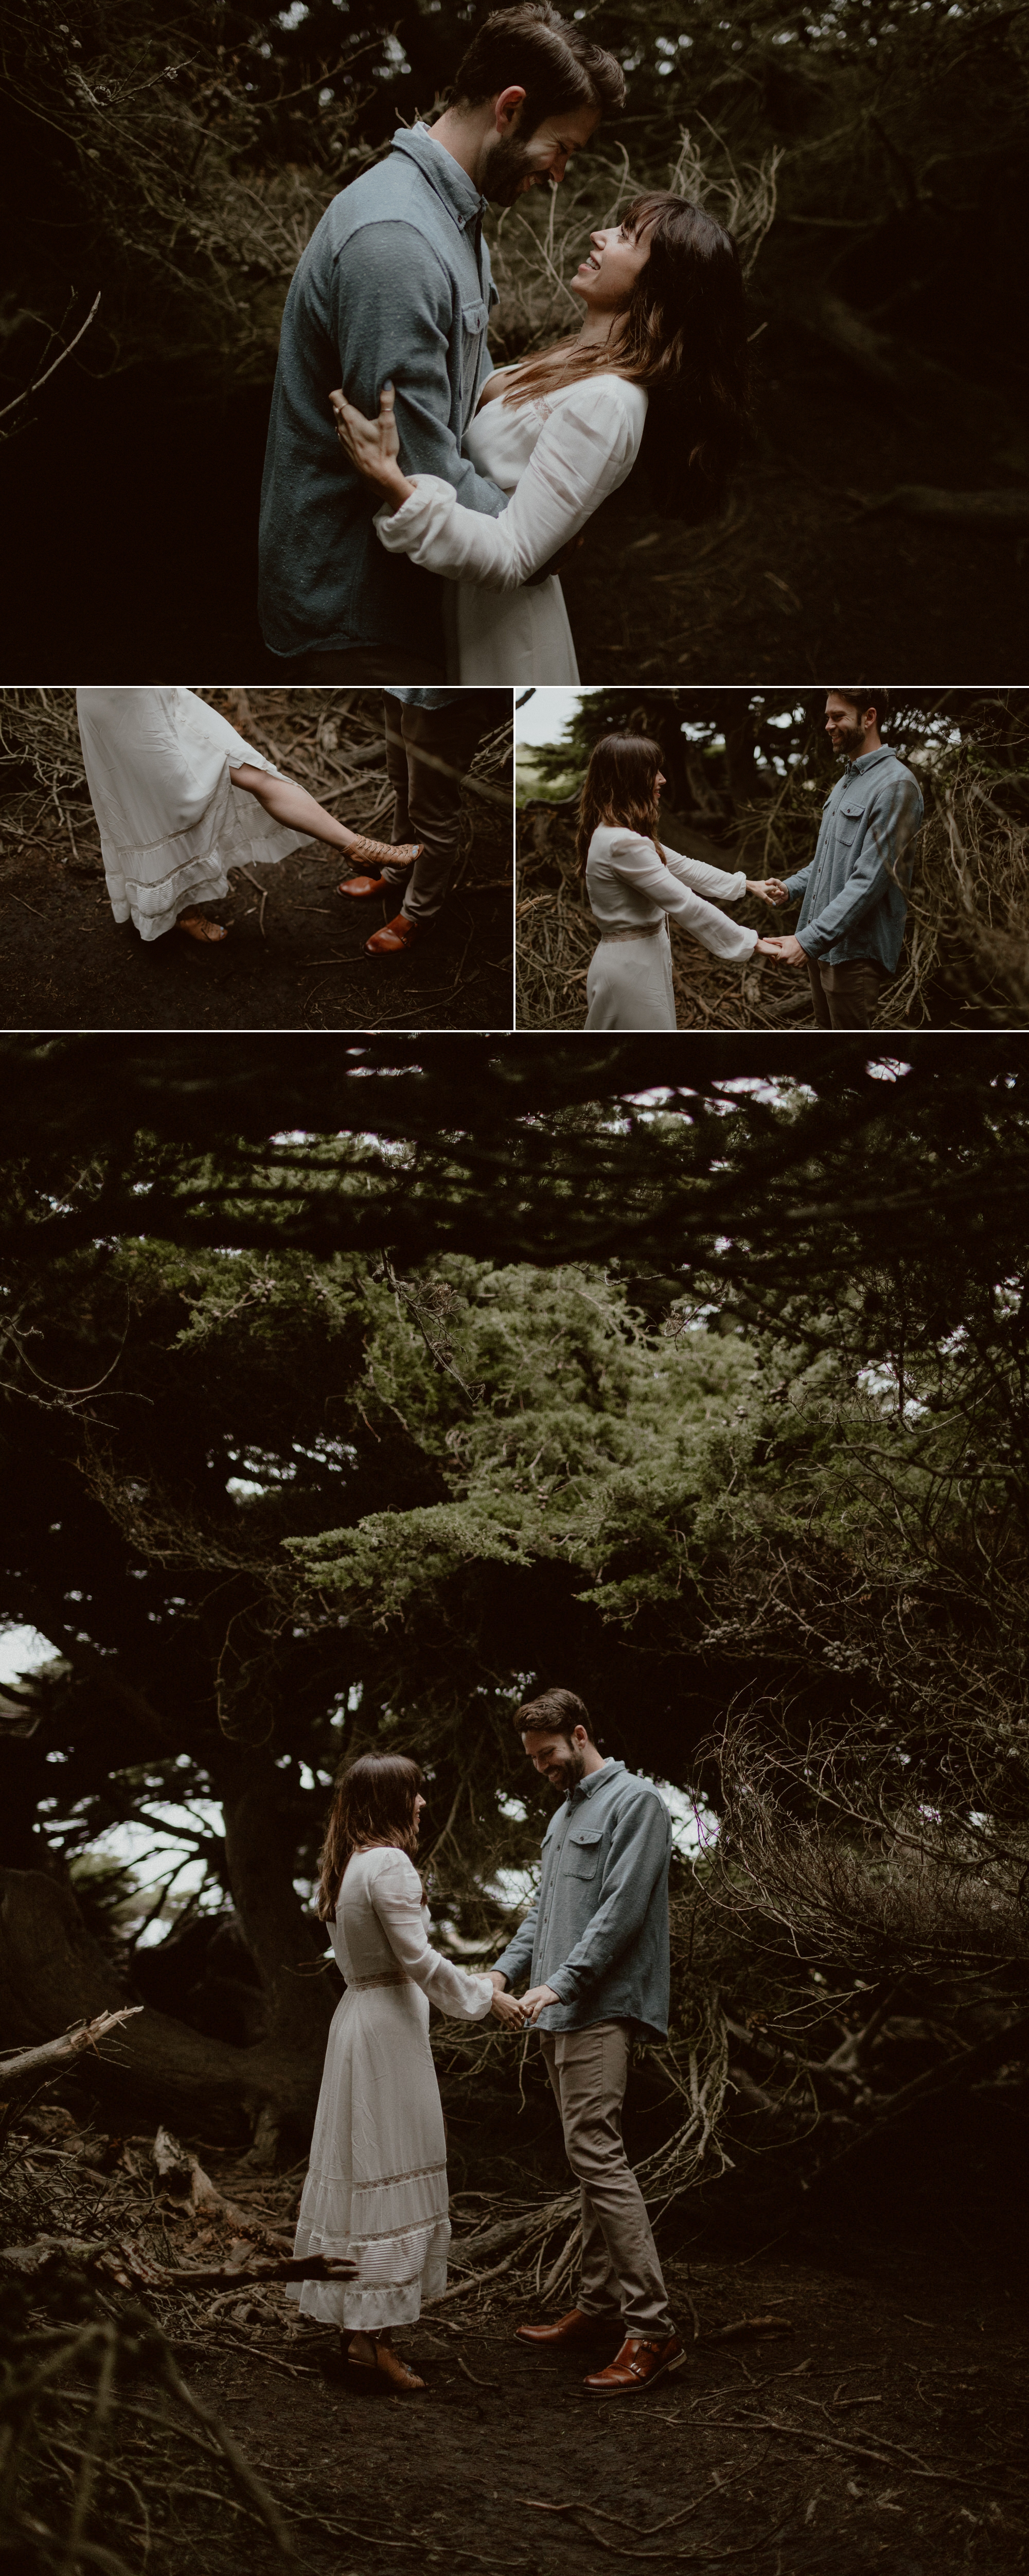 Romantic Bodega Bay Engagement Session | Gretchen Gause Photography #theknotwedding #romanticshoot #couplesshoot #sfweddingphotographer #sfelopement #engagementsession #bodegabay